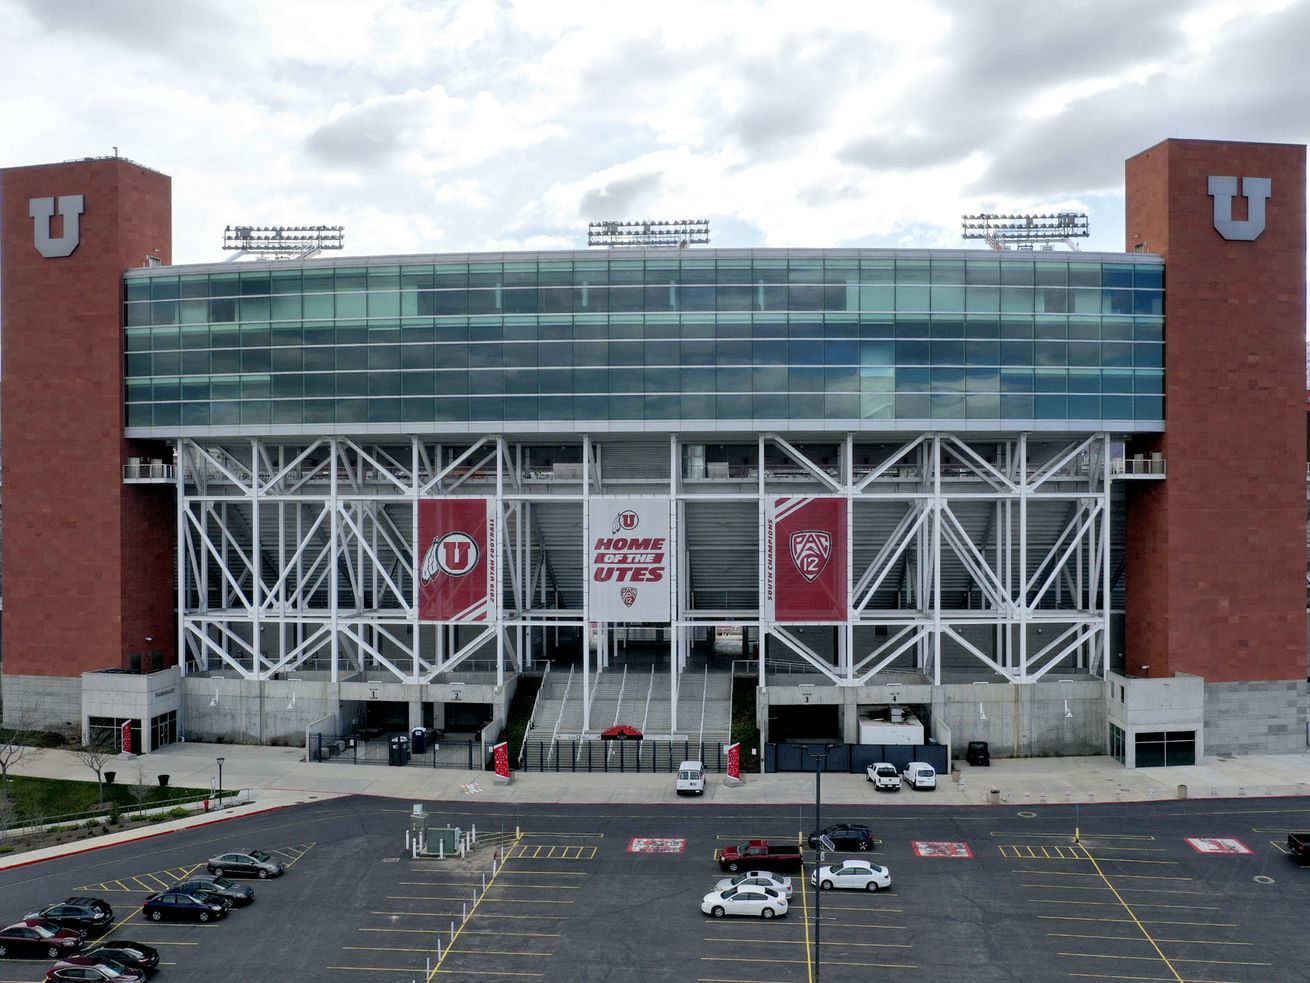 University of Utah outlines plans for 'phased-in approach' to reopen facilities for voluntary workouts starting next month